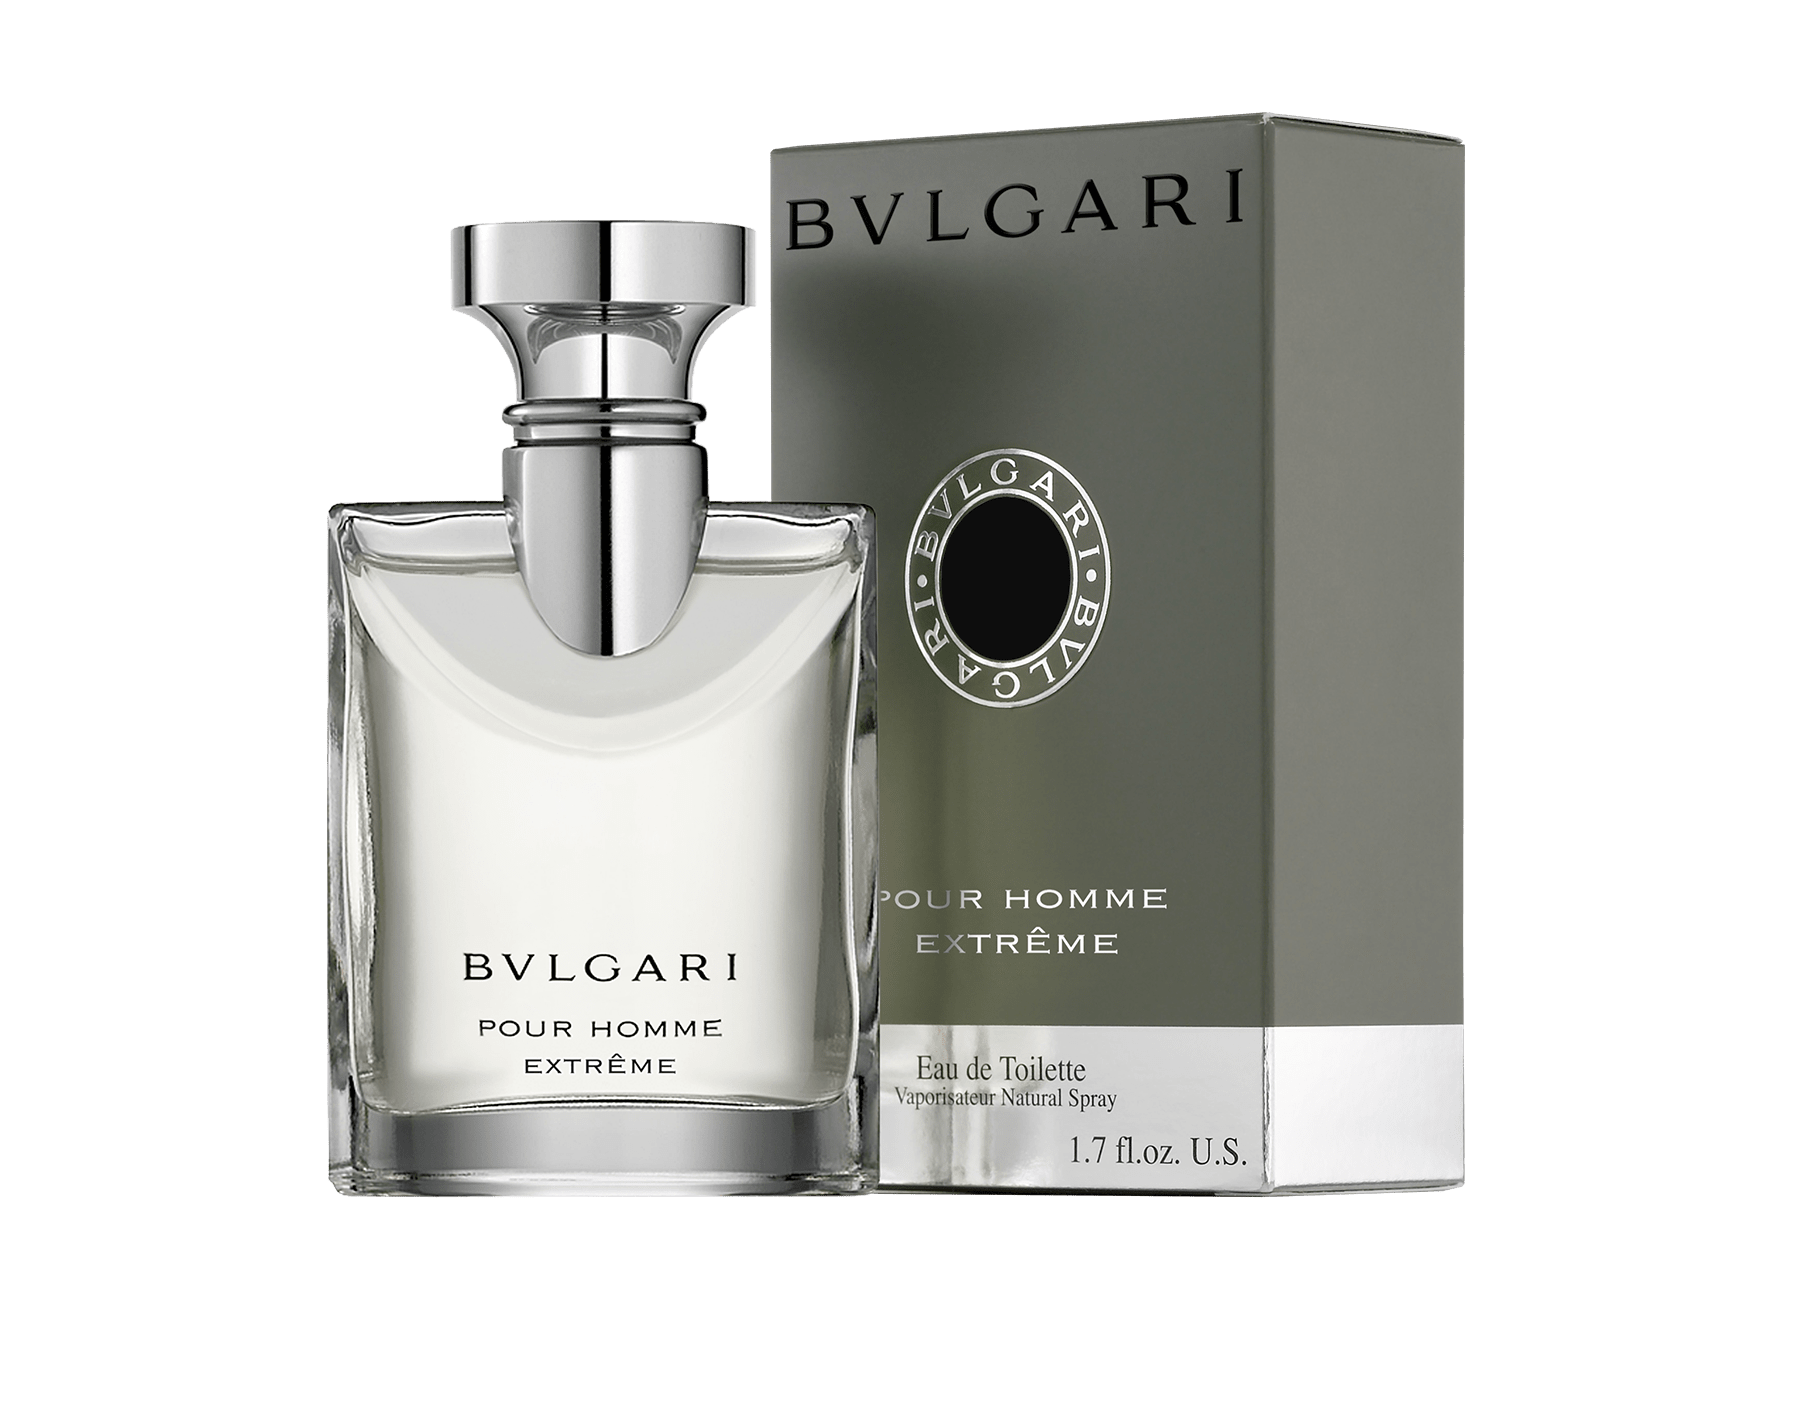 A contemporary and classic fragrance for men 83320 image 2